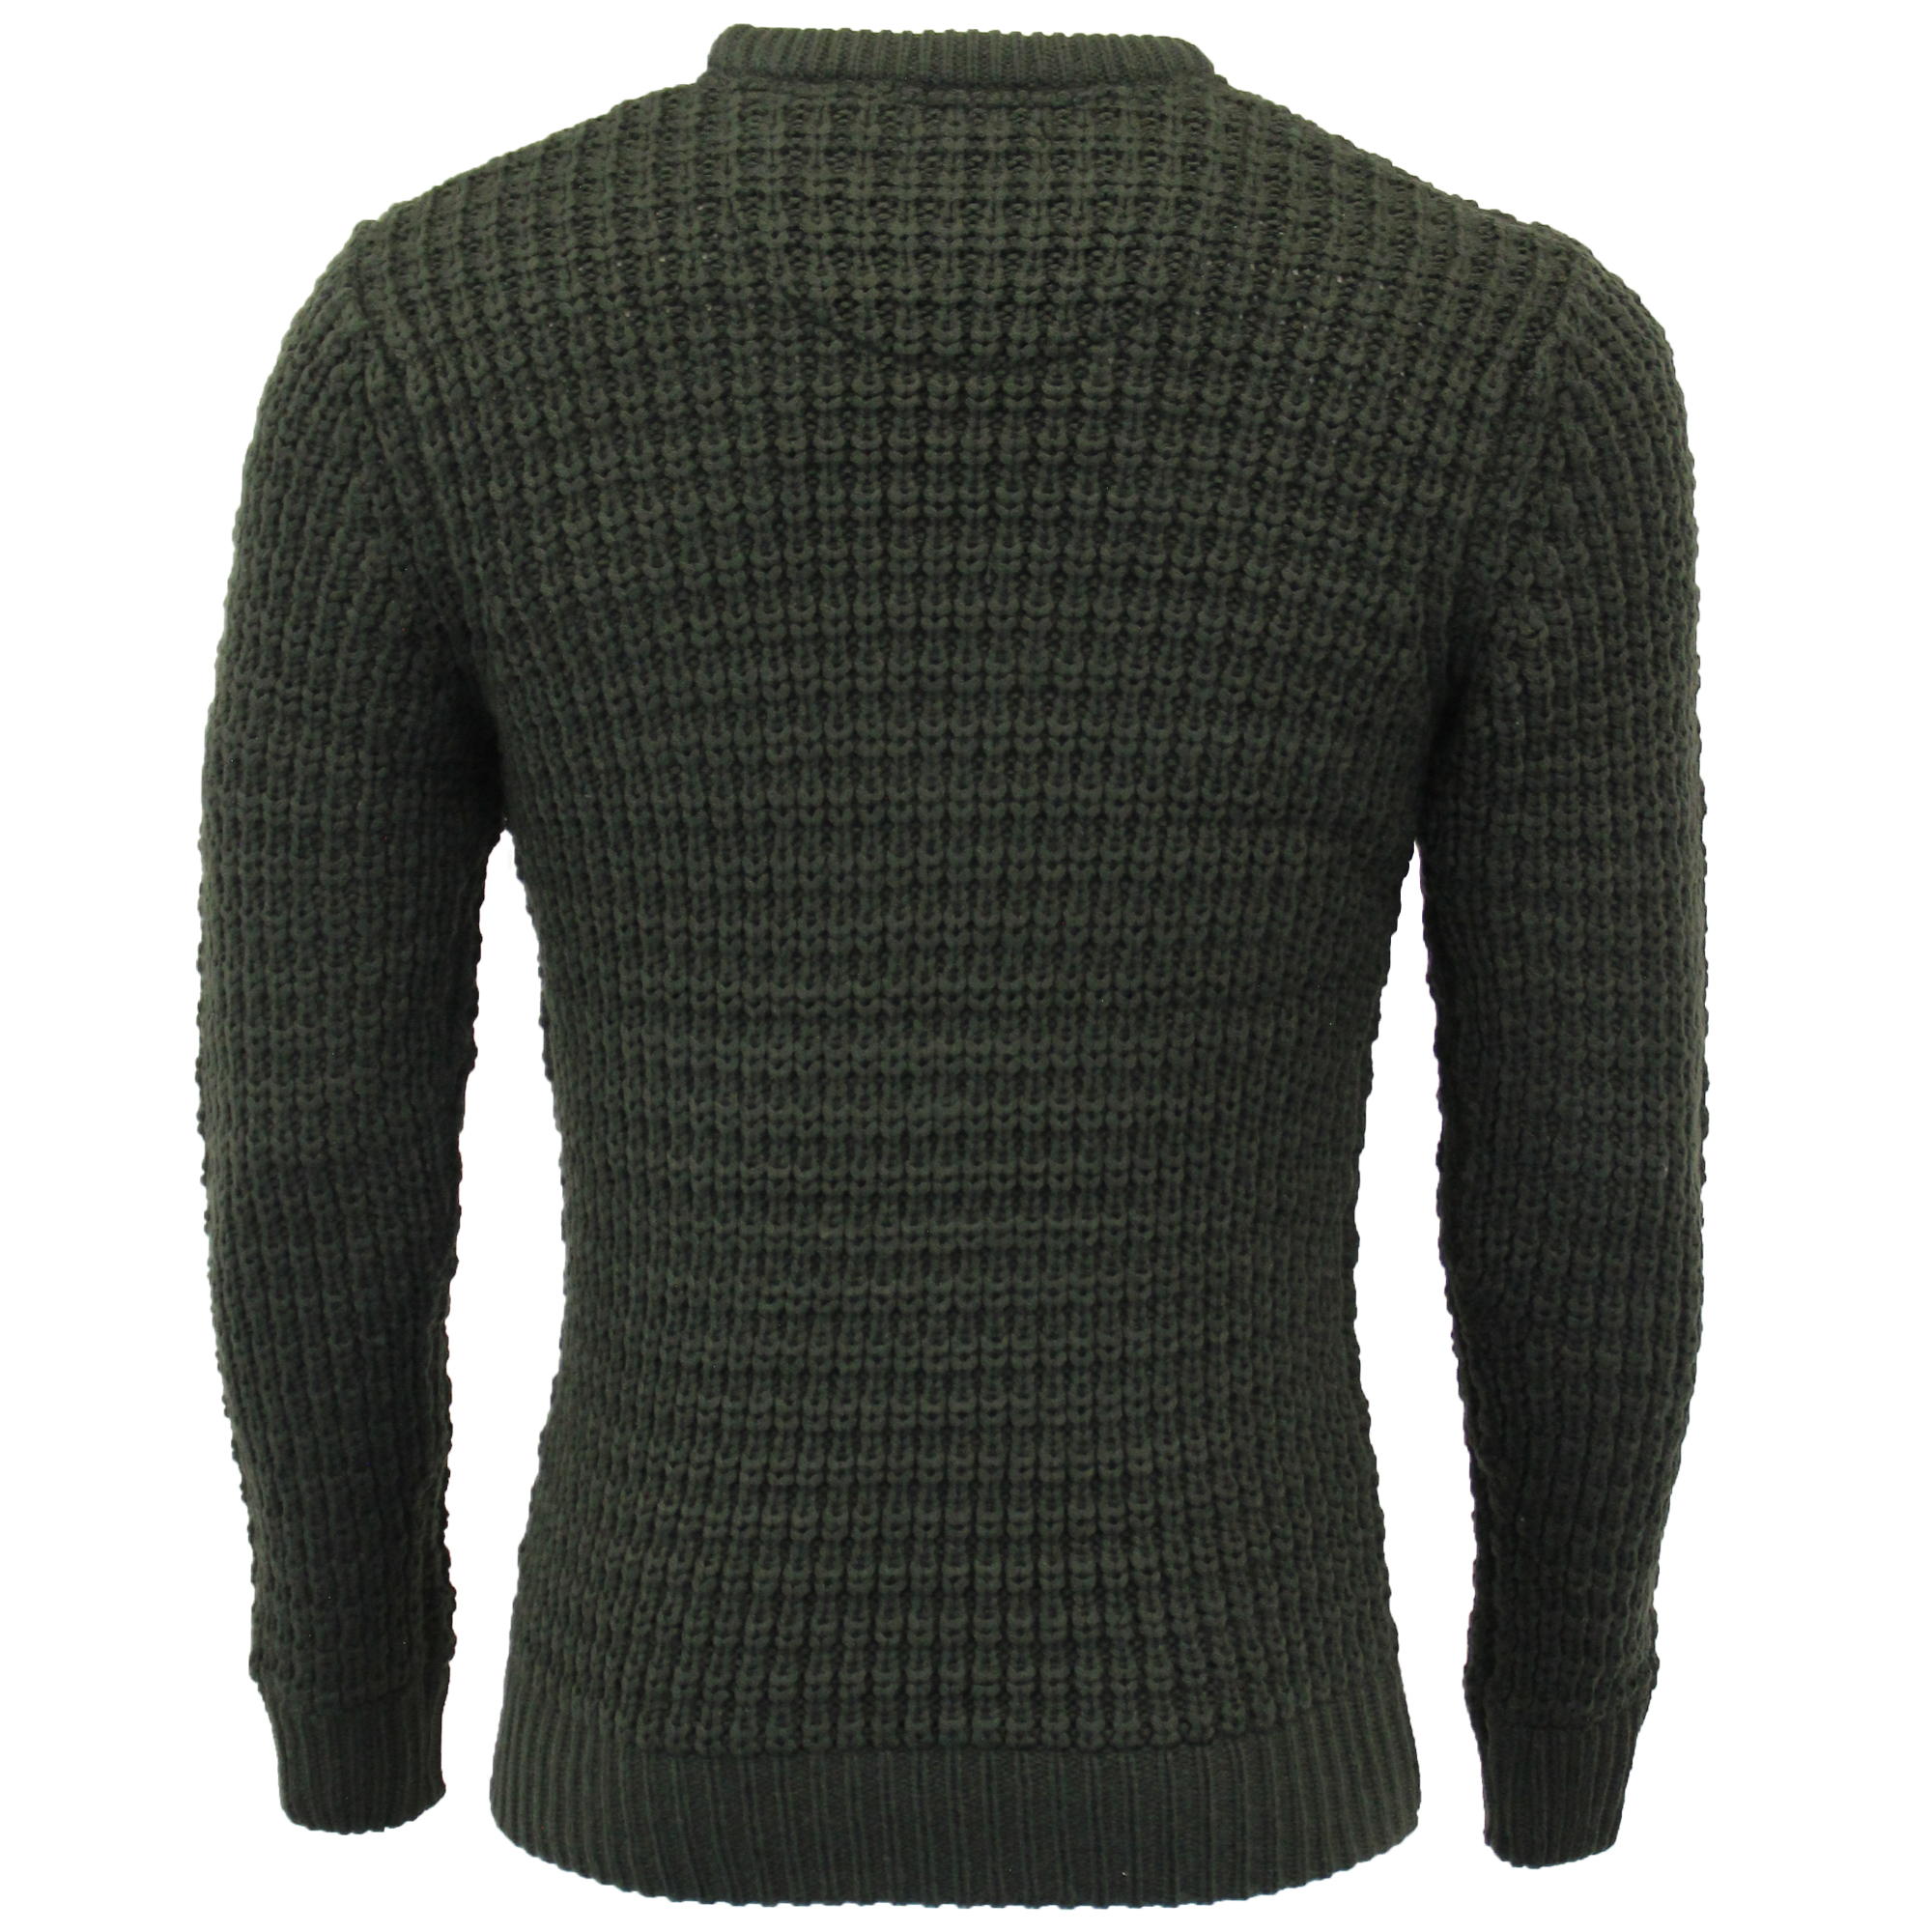 Mens-Cable-Knitted-Jumper-Brave-Soul-DIRAC-Crew-Neck-Pullover-Top-Winter-Fashion thumbnail 9